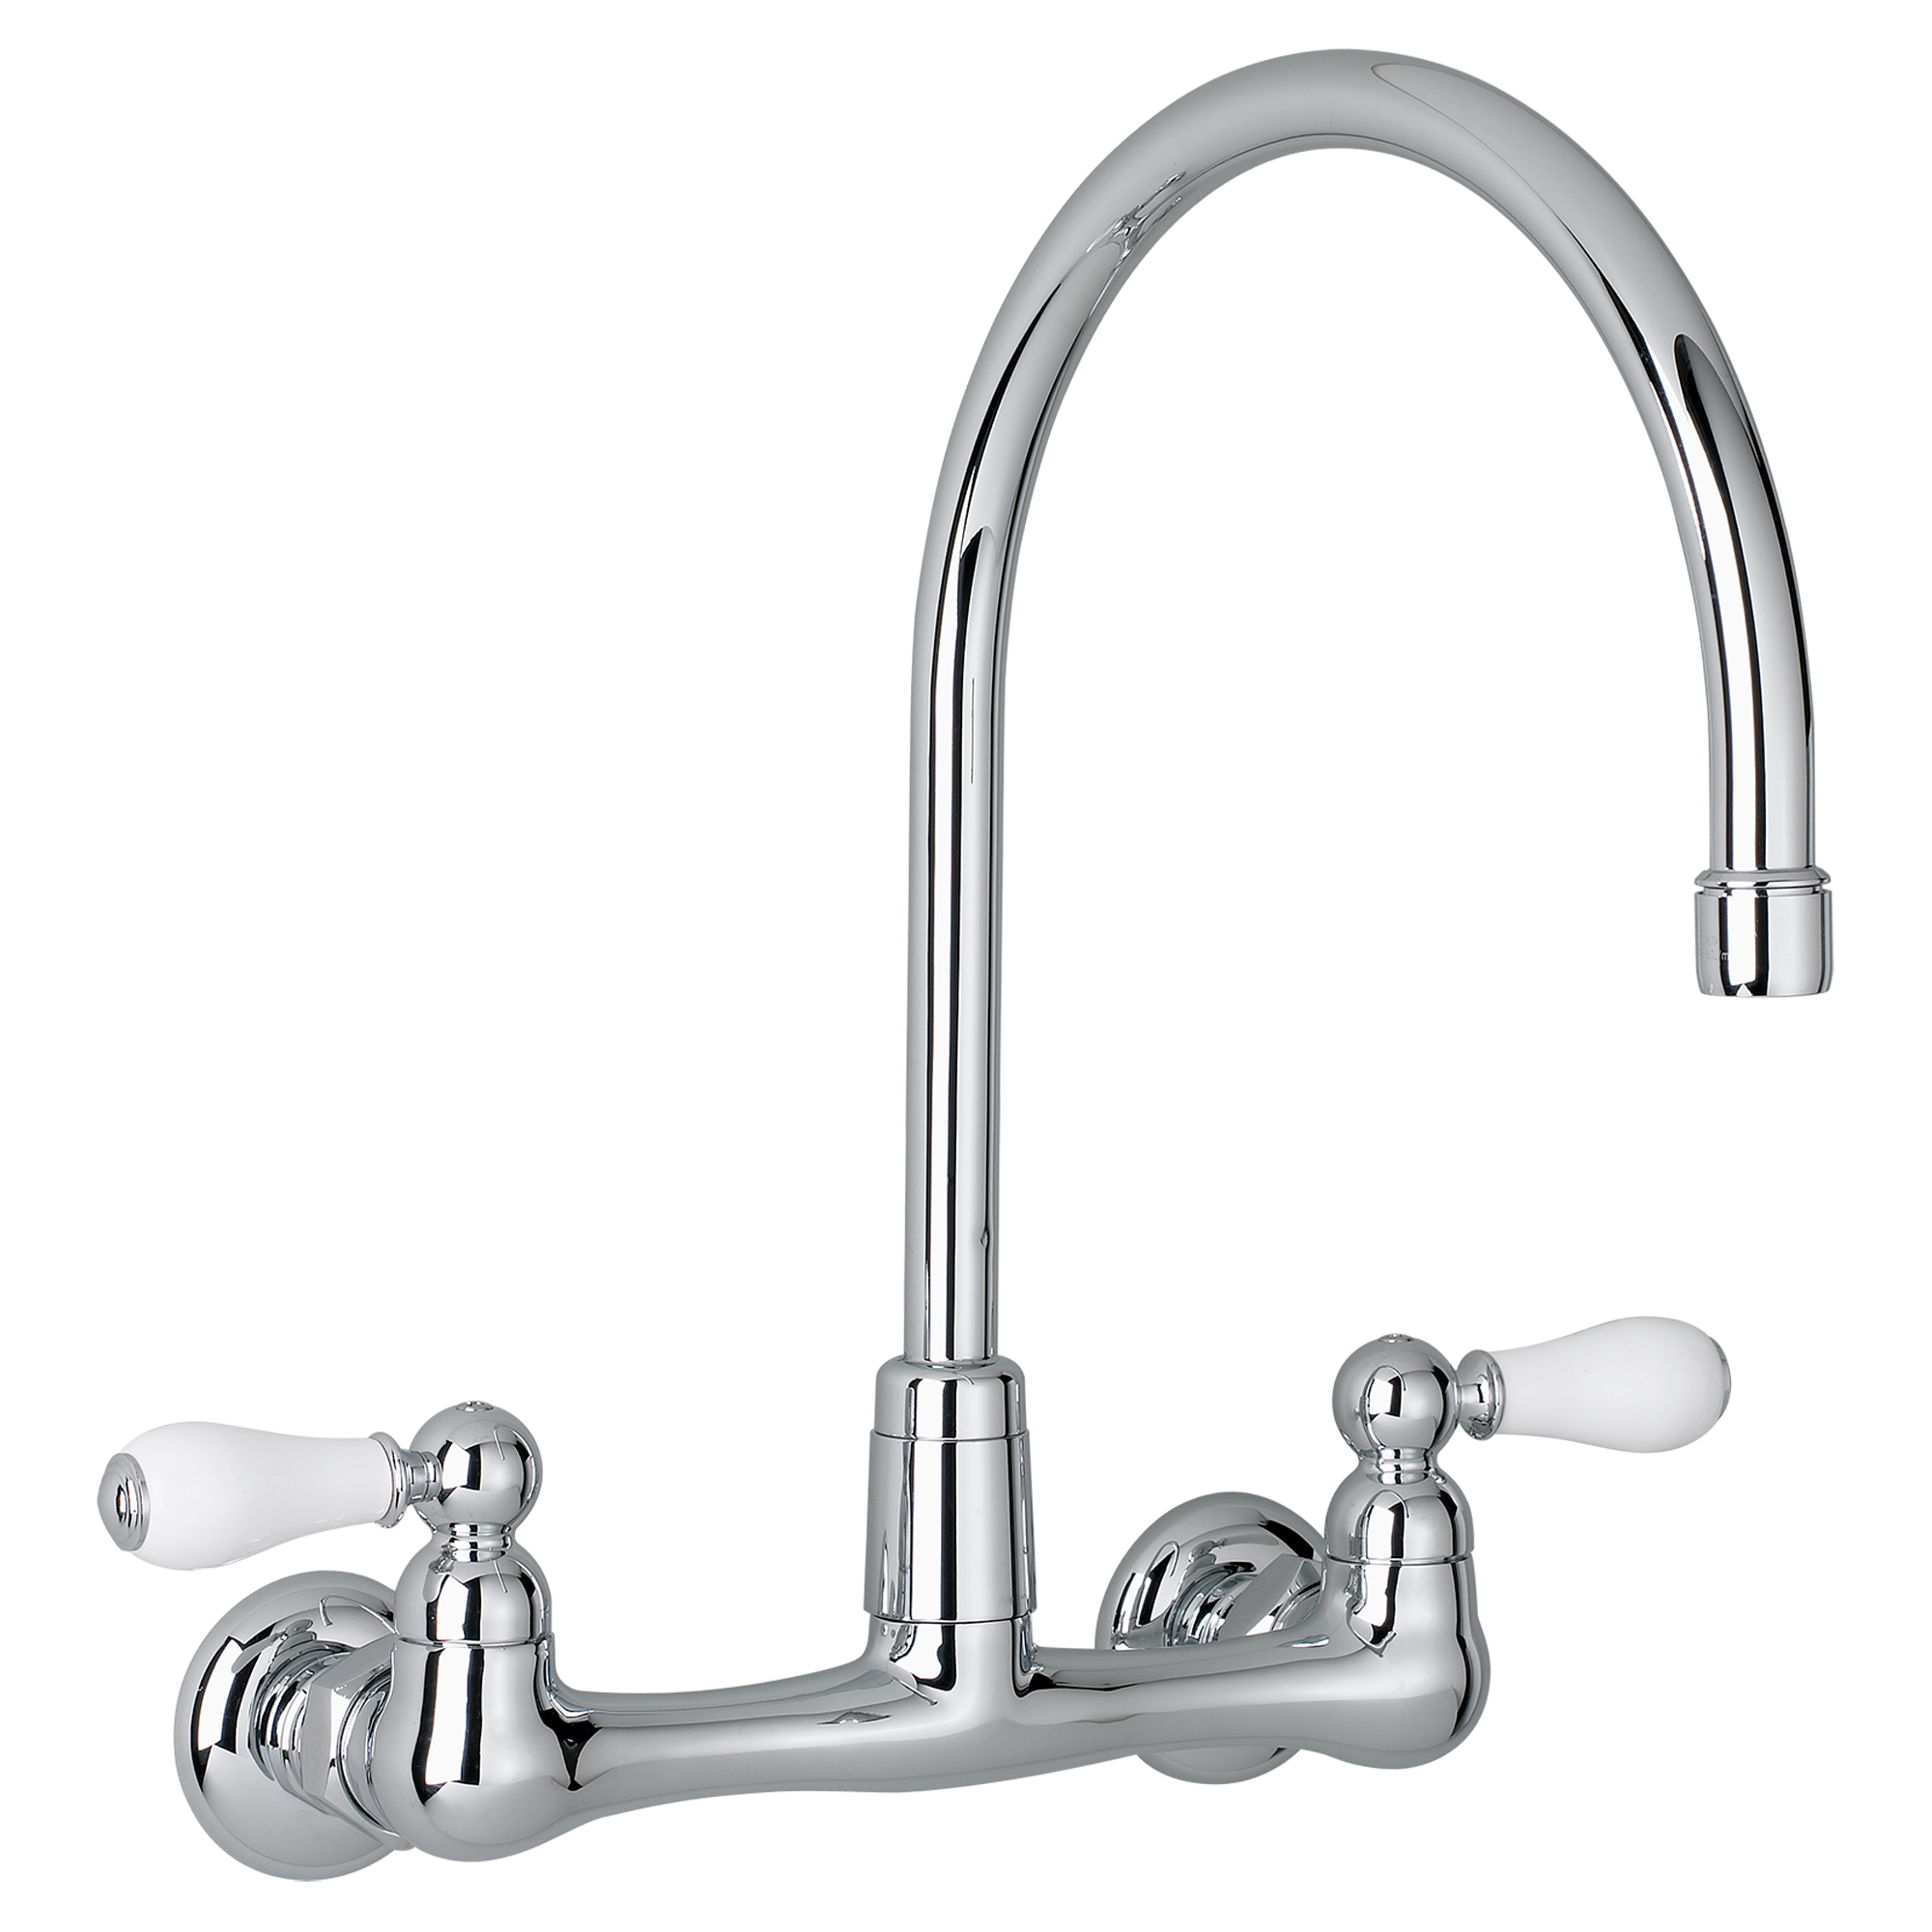 The Heritage 2 Handle High Arc Wall Mount Kitchen Faucet Brings